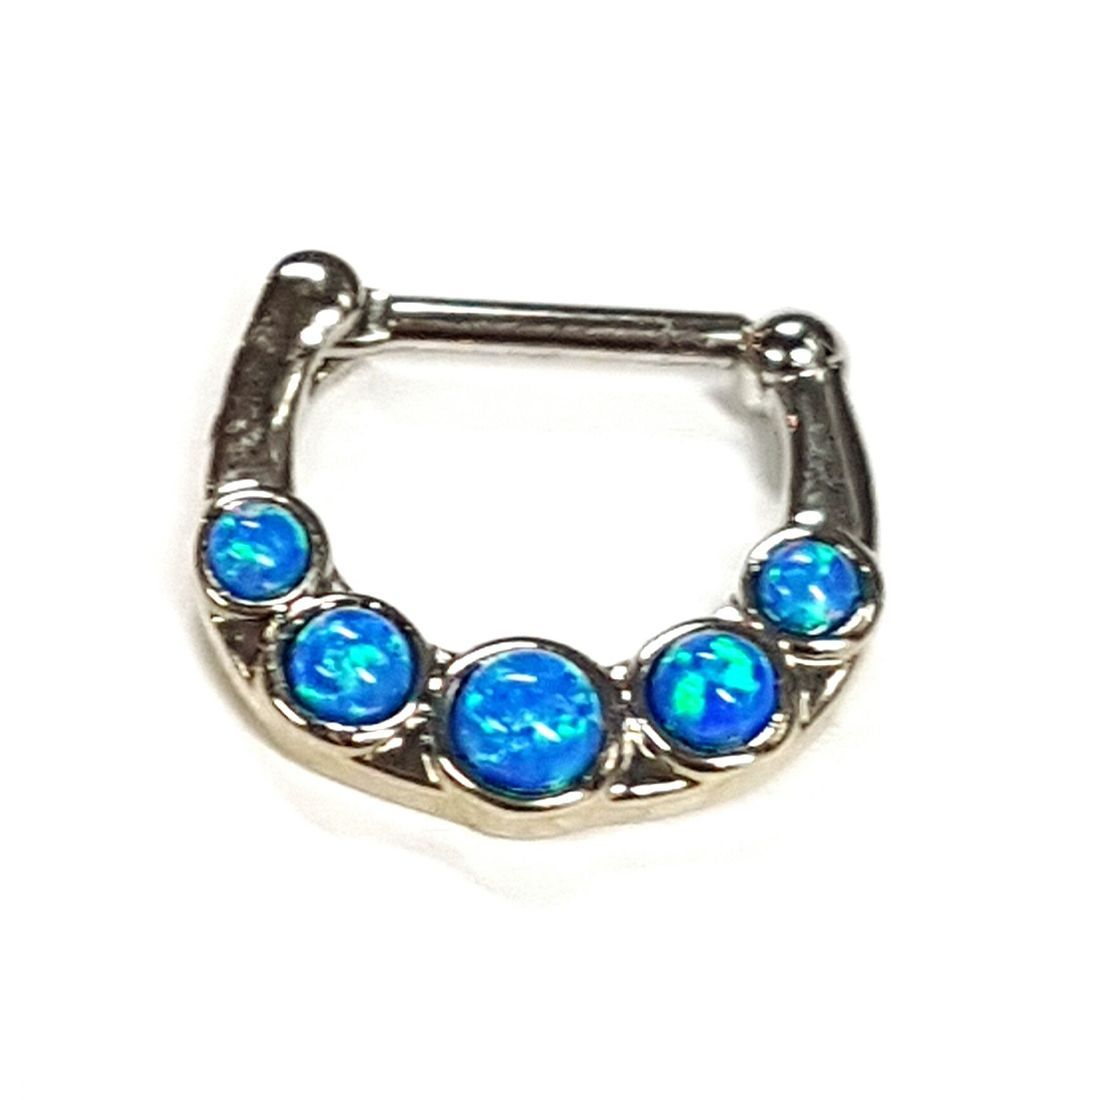 1.2 5 Stone Blue Opal titanium septum clicker  available at Kazbah online and our Leicester City Centre Shop